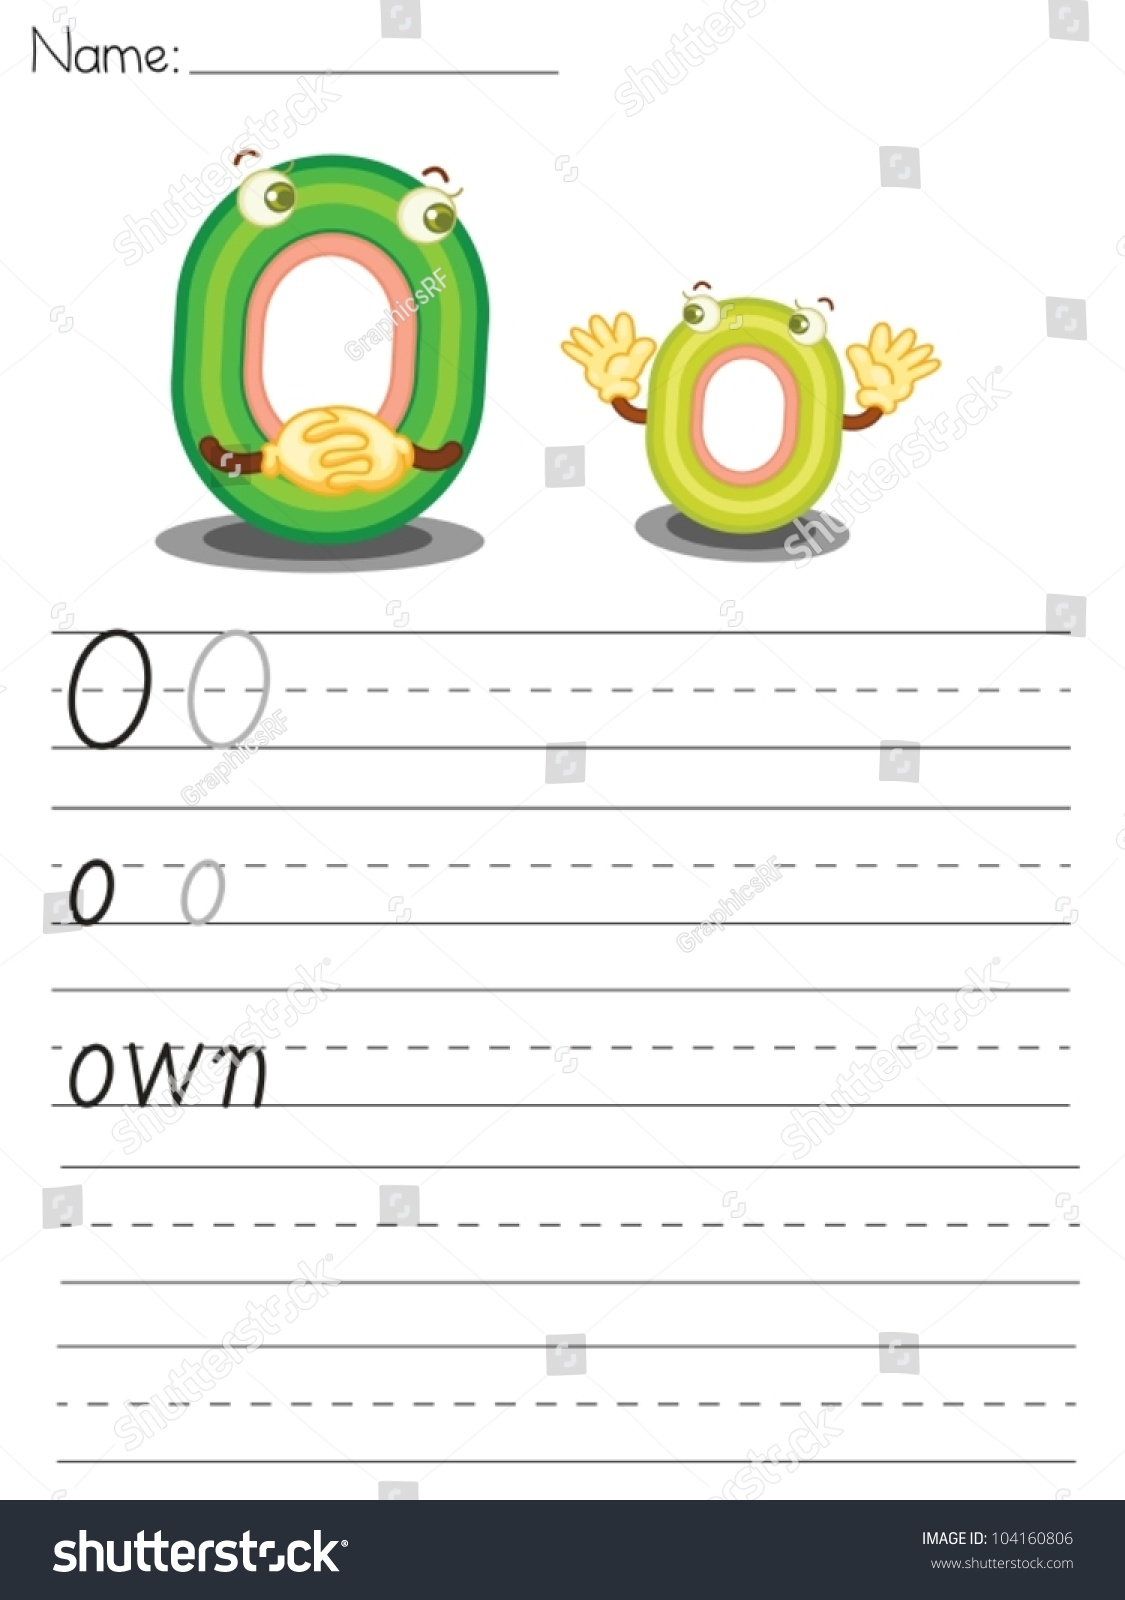 Illustrated Alphabet Worksheet Letter O Stock Vector